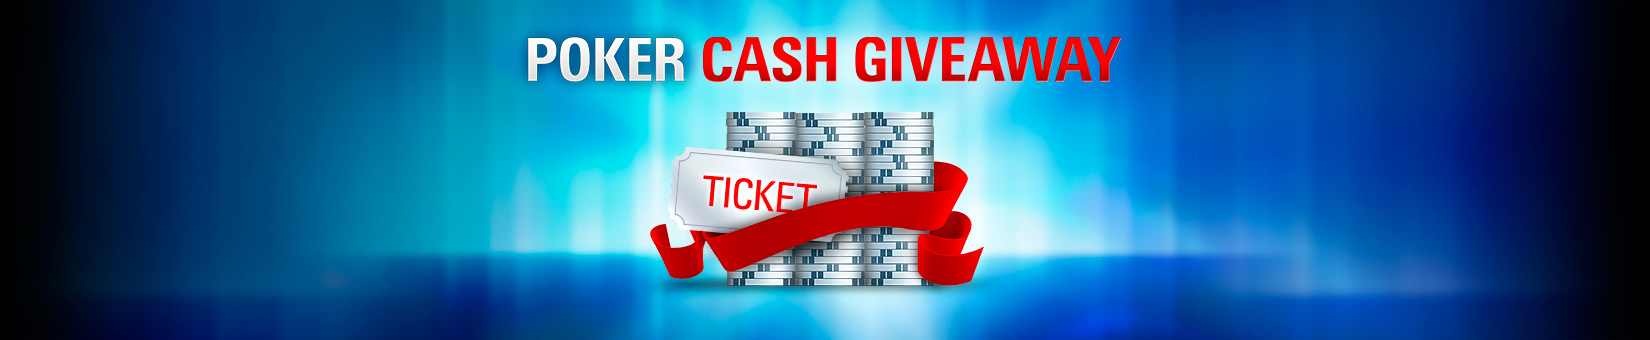 Poker Cash Giveaway Ticket Pokerstars 2021